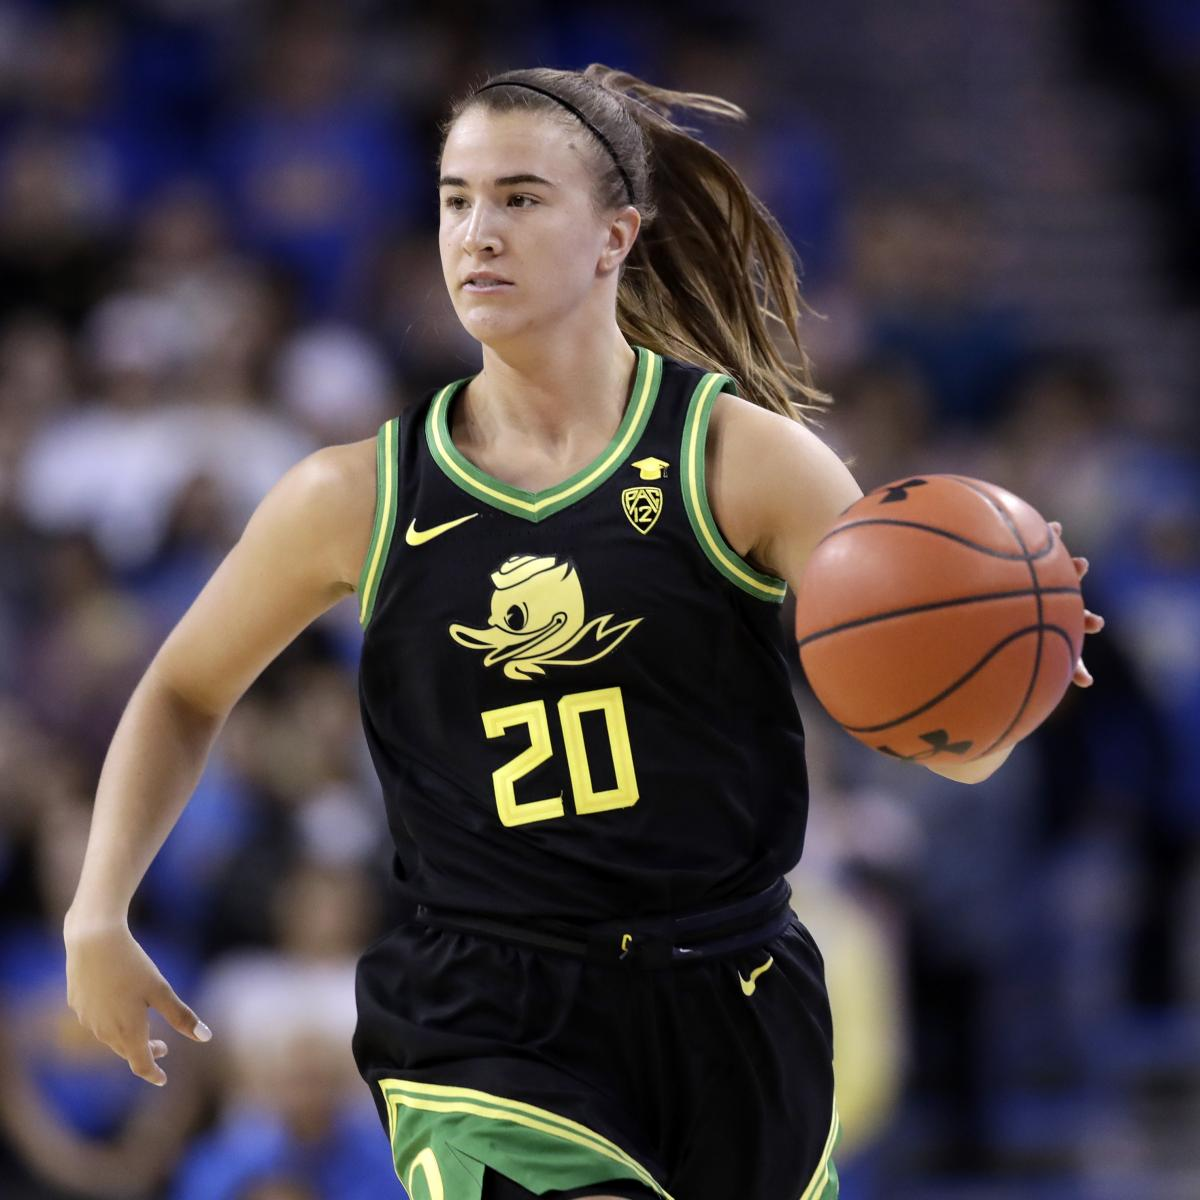 Oregon's Sabrina Ionescu Becomes 1st Player in D-1 History with 2K-1K-1K